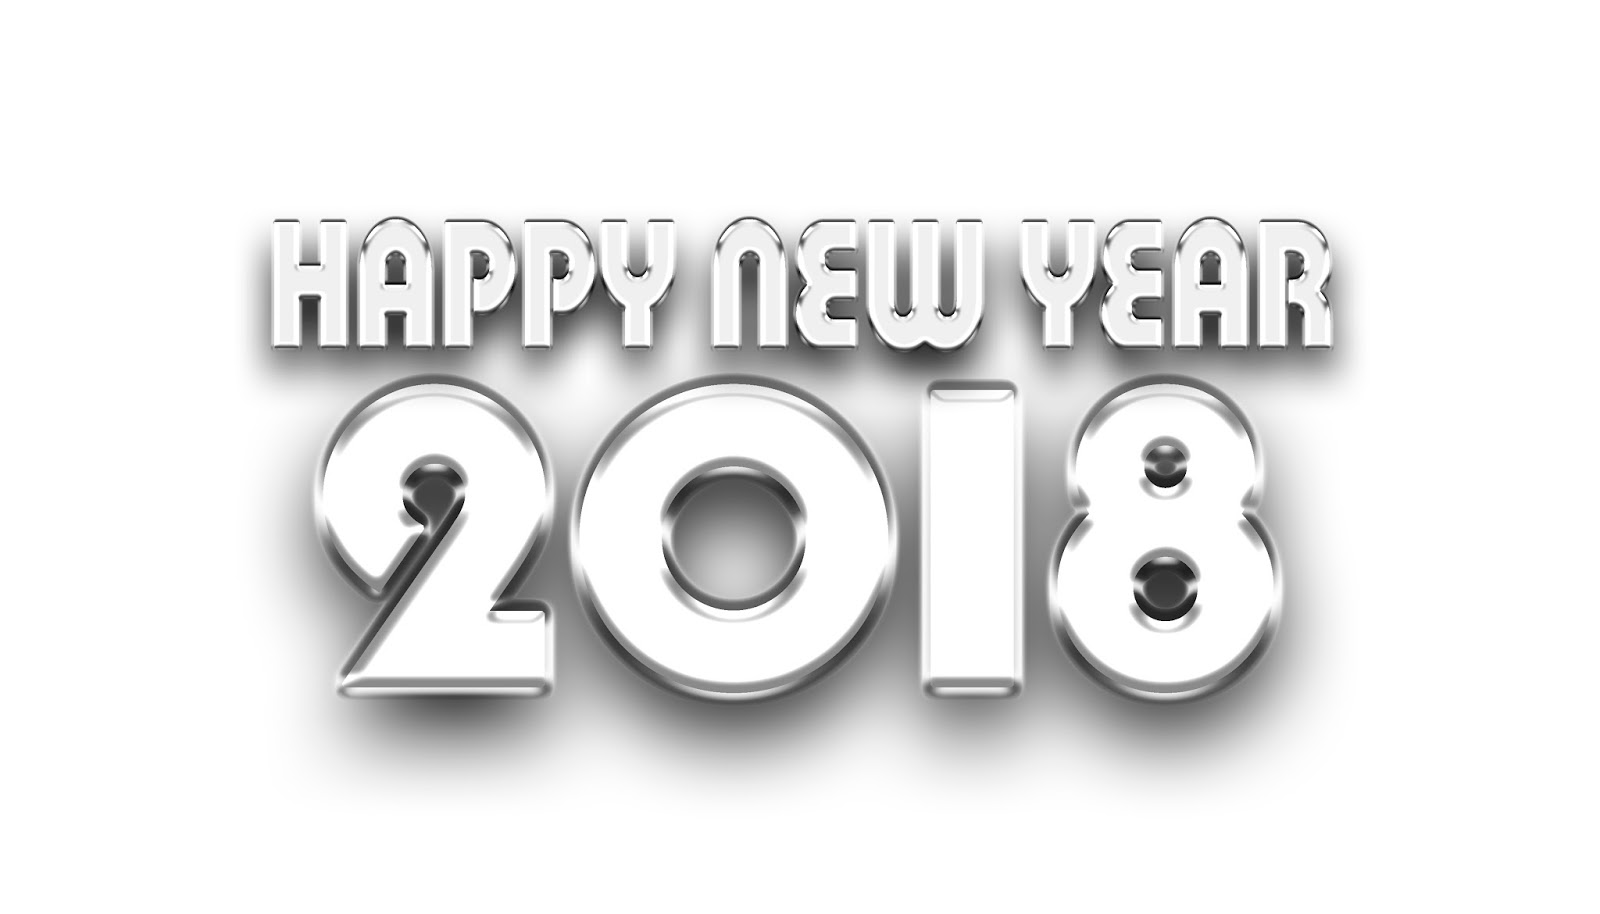 Happy New Year 2018 Wishes, Images – Best Inspirational Quotes, Messages